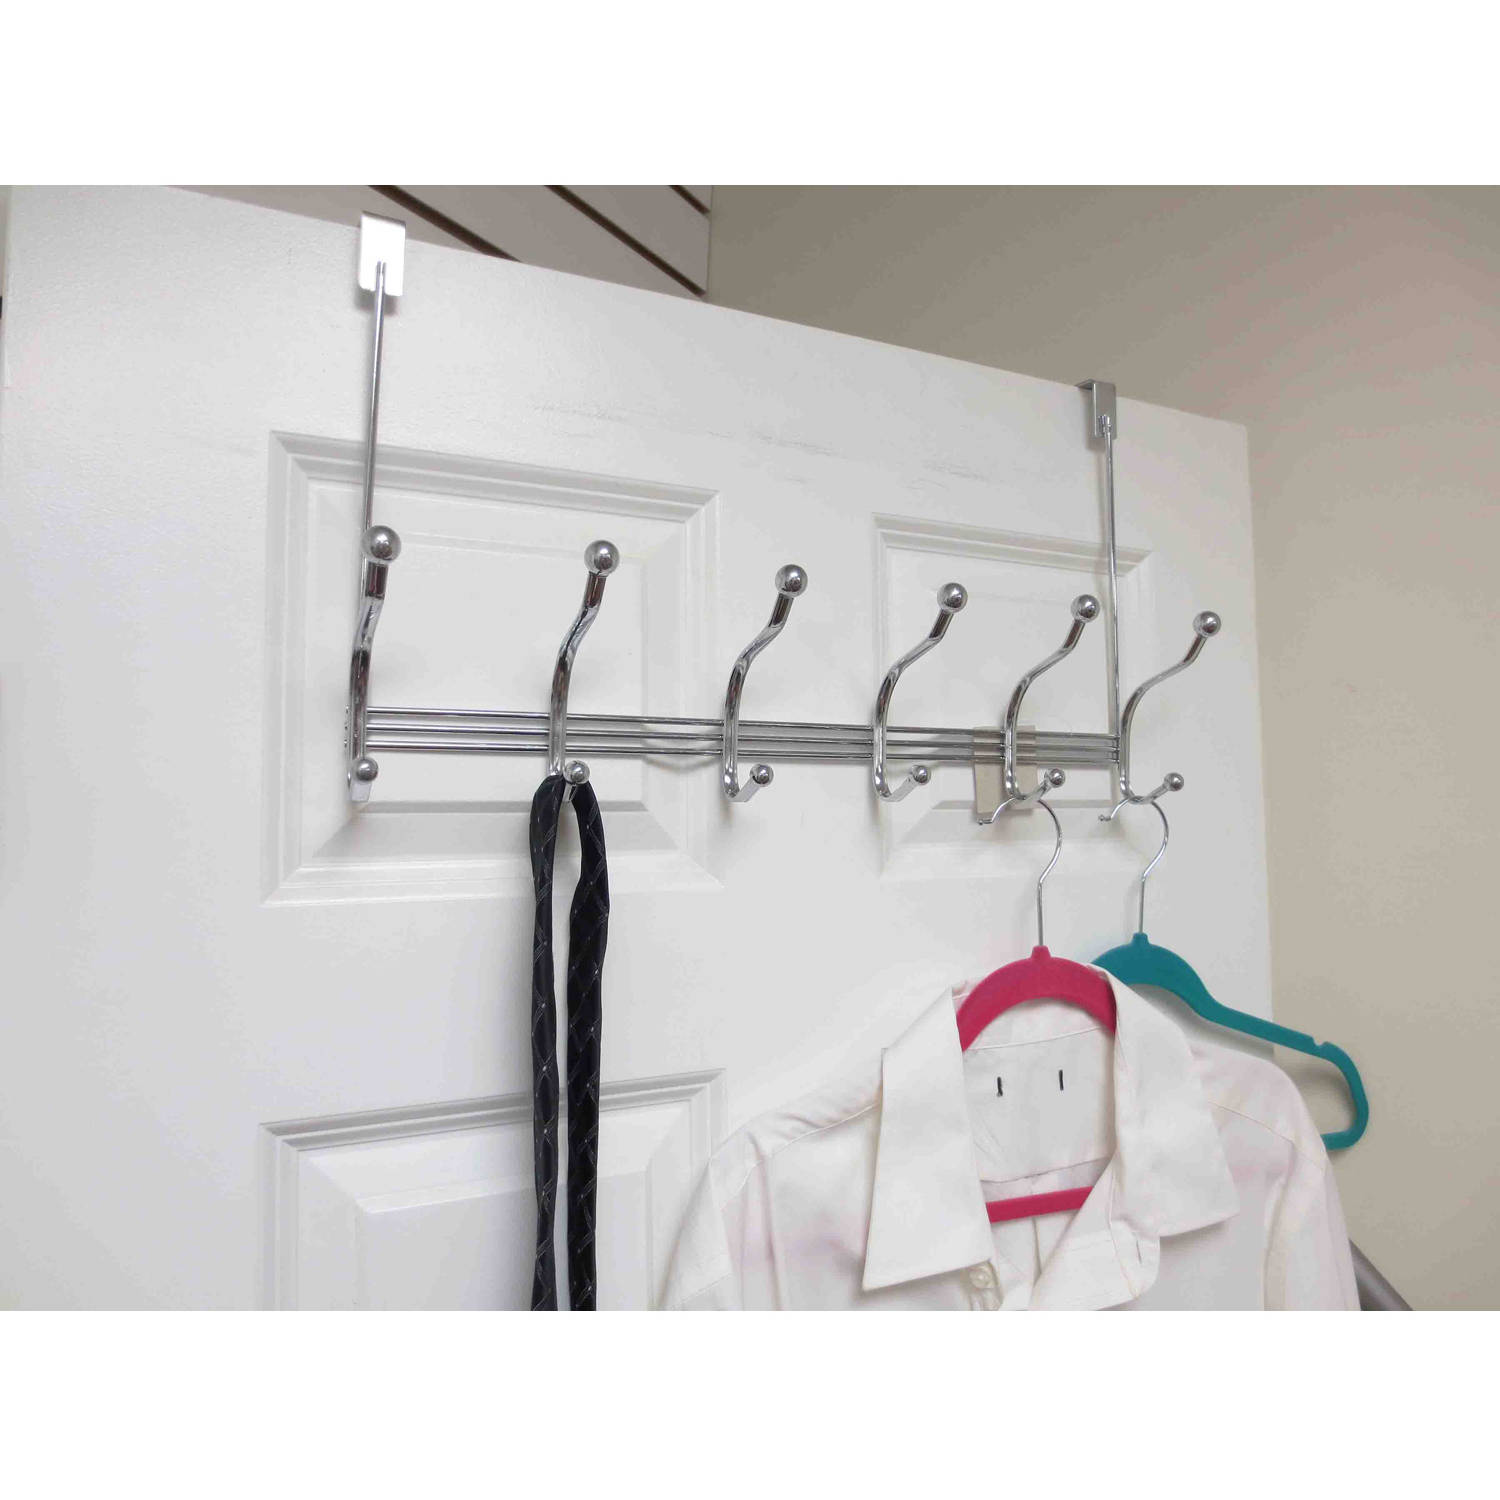 Home Basics 6 Hook Over-the-Door Tri-Bar Hanging Rack